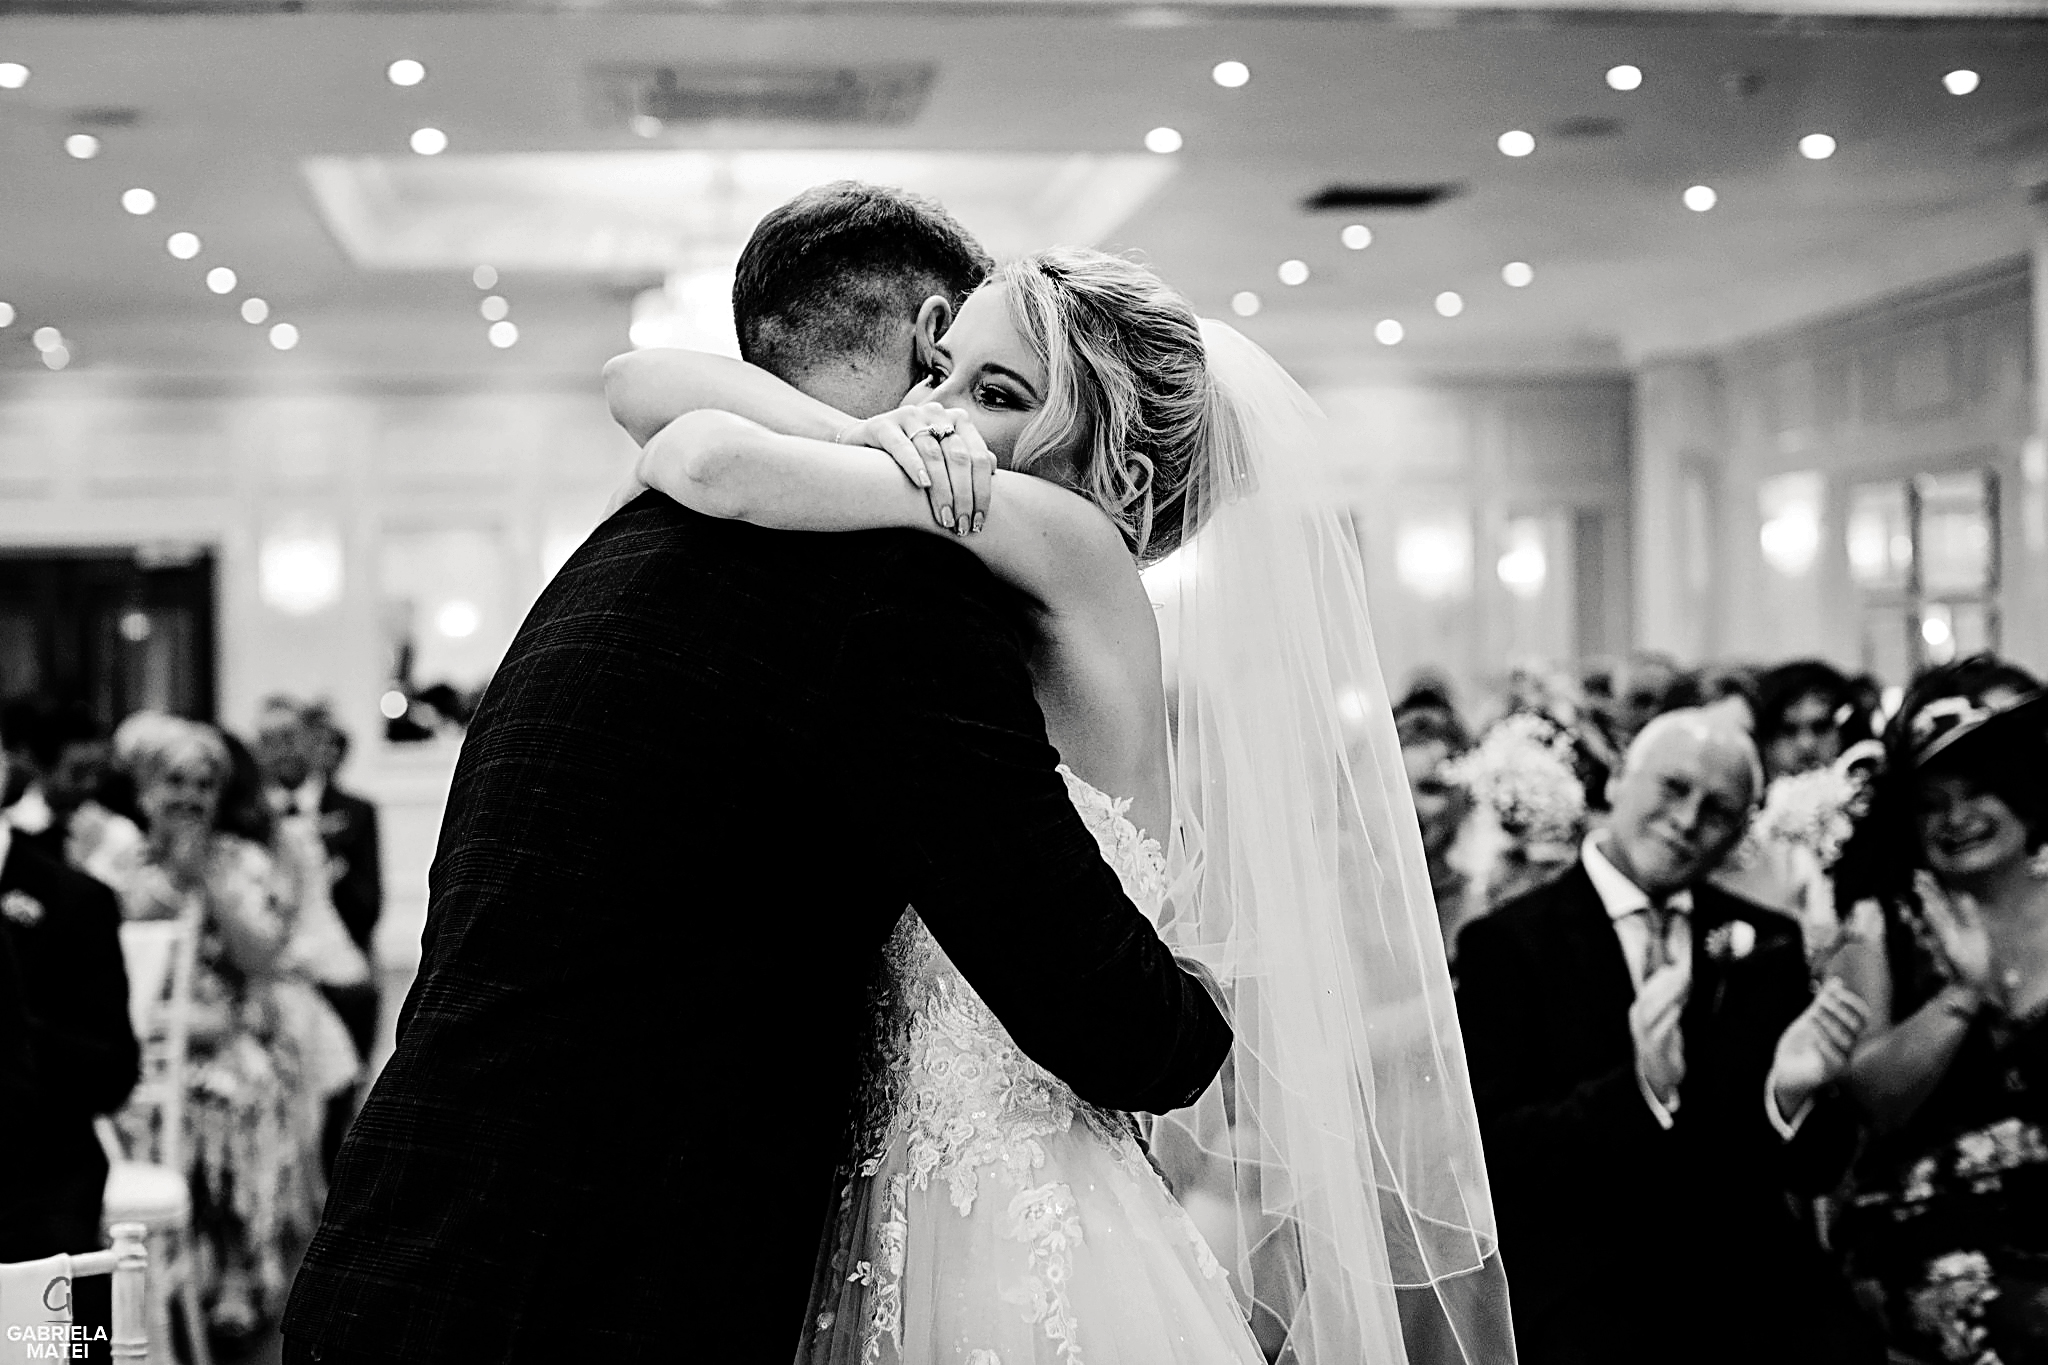 Bride and groom hug each other tightly during civil ceremony